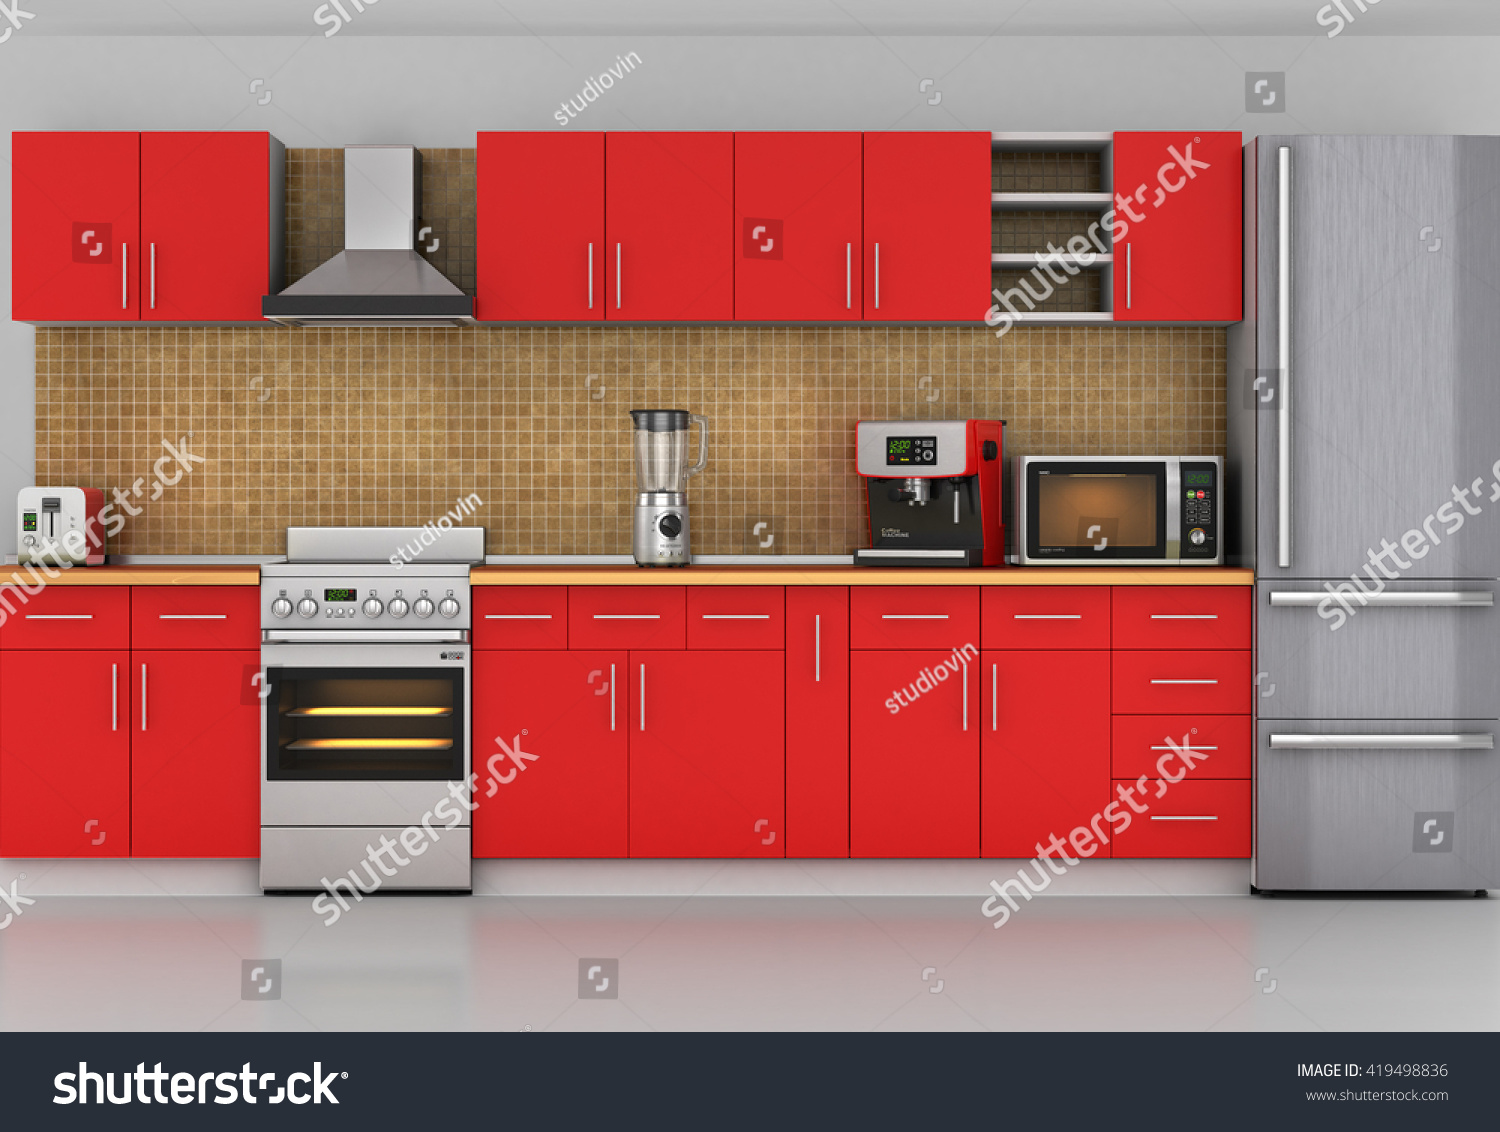 Facade Kitchen Front View Red Kitchen Stock Illustration